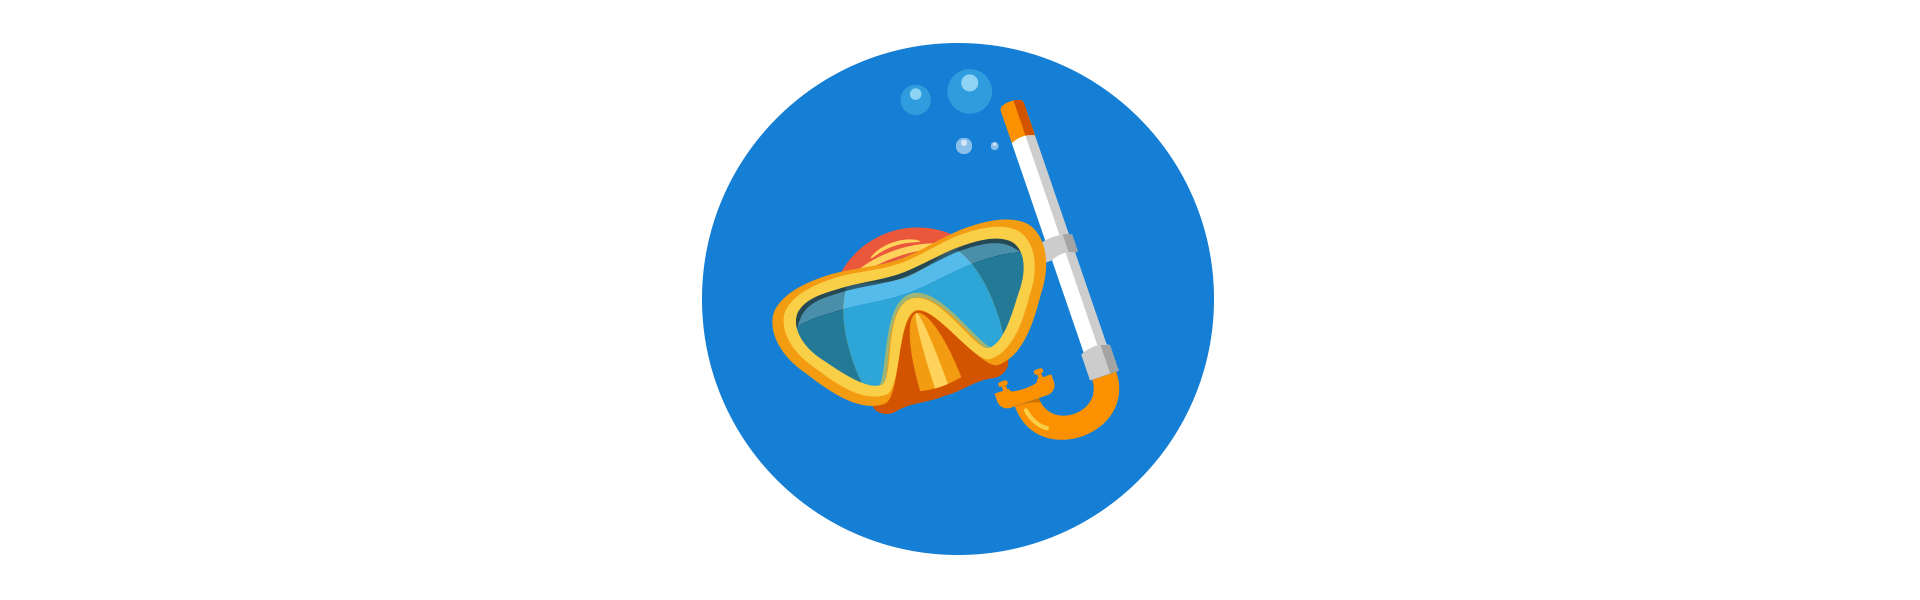 Sunny beach day with people skin and sun safety clipart svg freeuse Top Snorkeling Sun Protection Tips - Sun Safety with Tanny Mangino svg freeuse